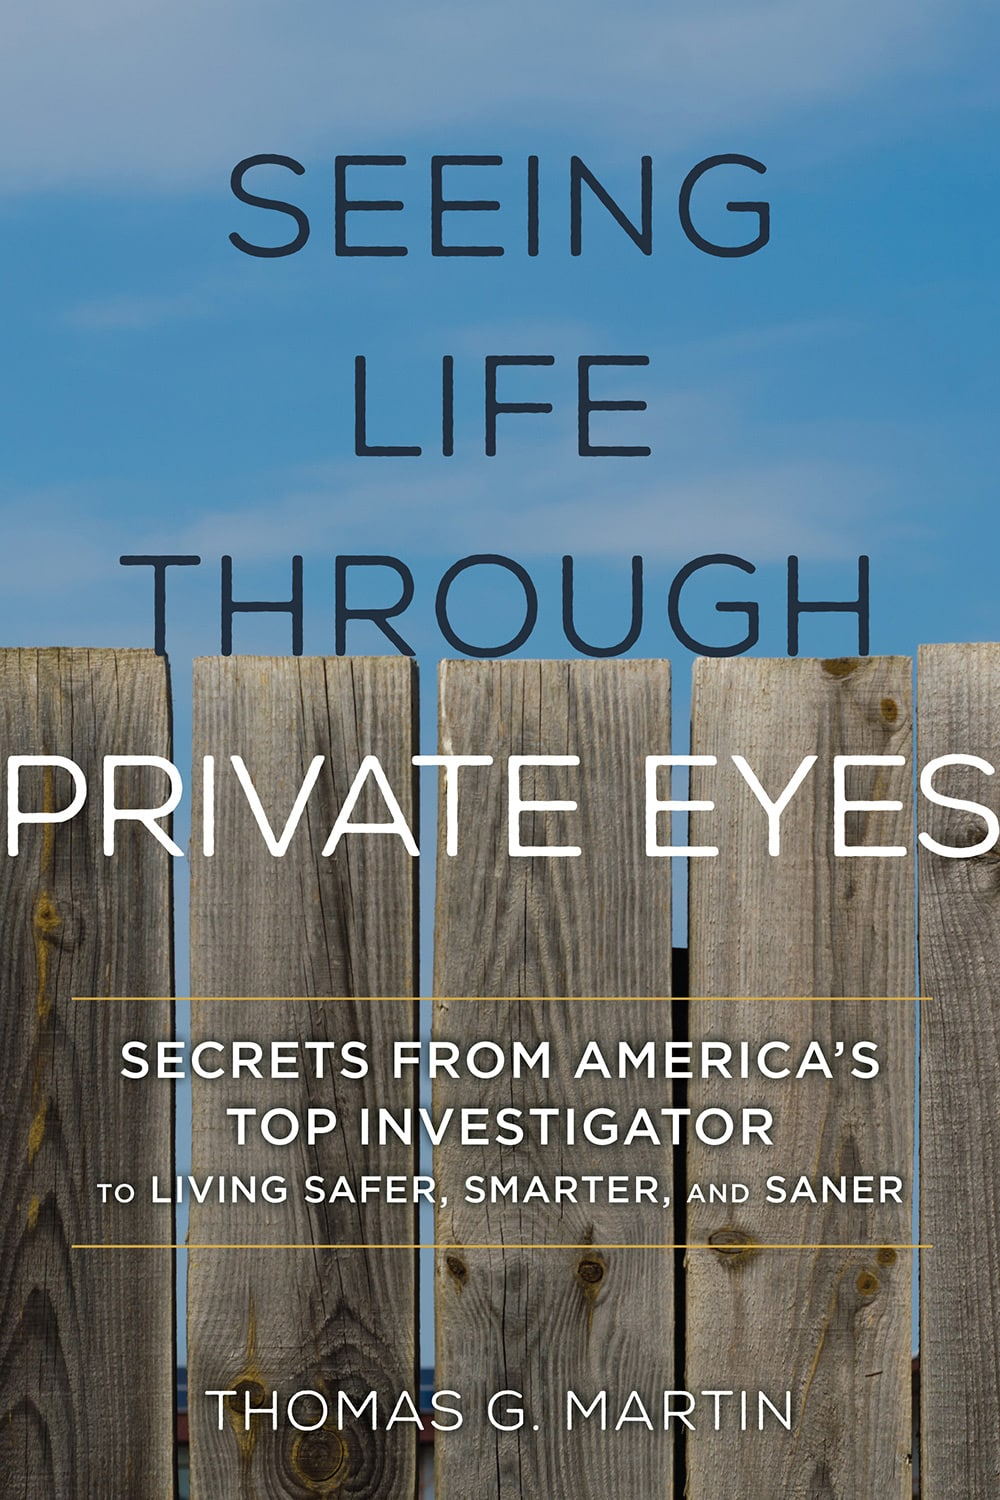 Seeing Life Through Private Eyes: Secrets from America's Top Investigator to Living Safer, Smarter, and Saner. Book by Thomas G. Martin